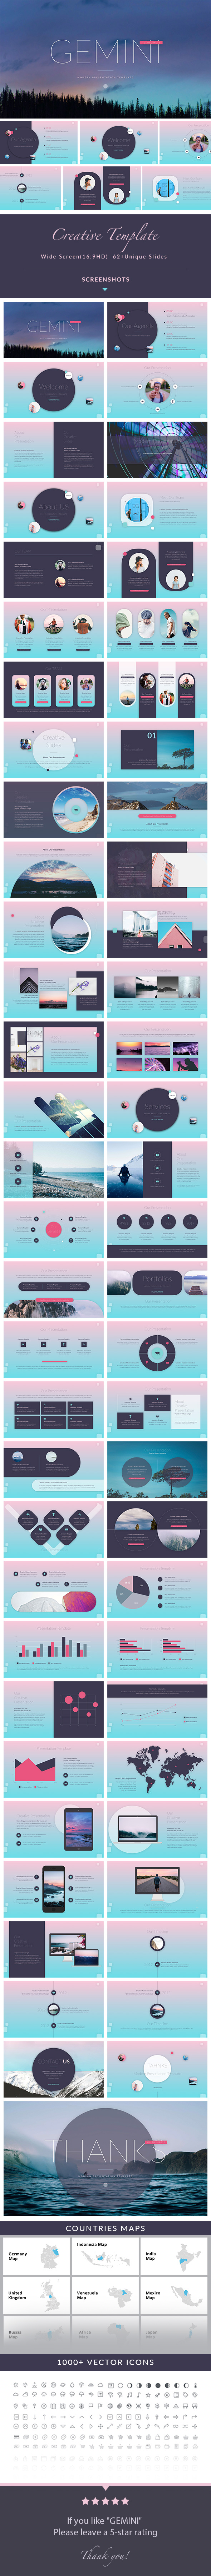 GraphicRiver GEMINI Creative PowerPoint Presentation Template 20834388